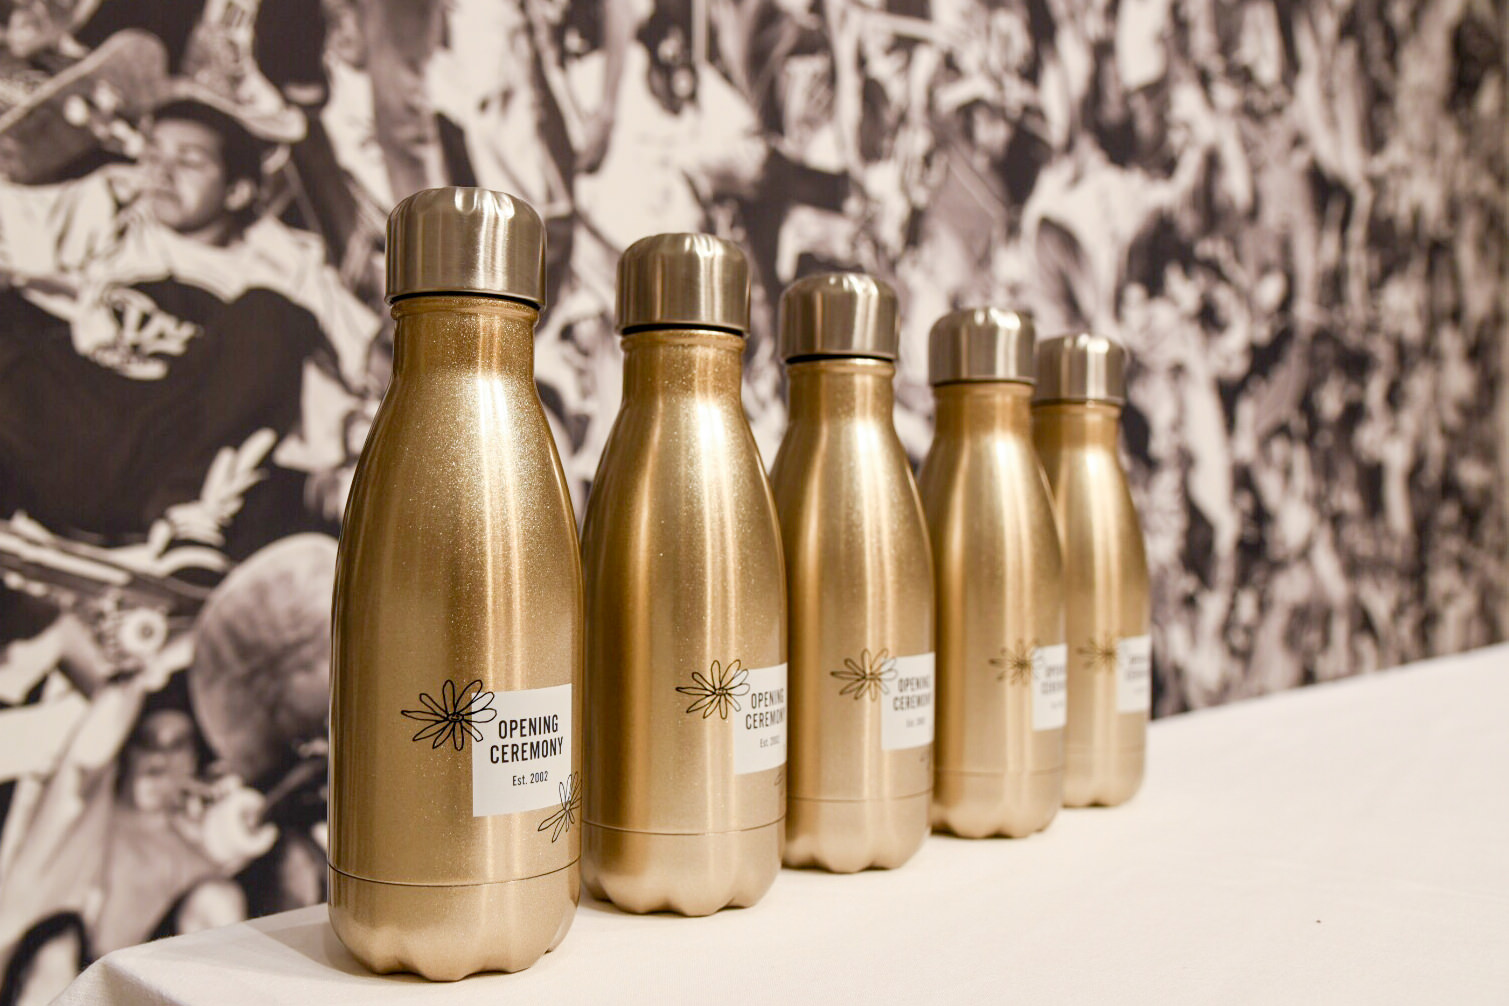 Opening Ceremony x S'well bottles